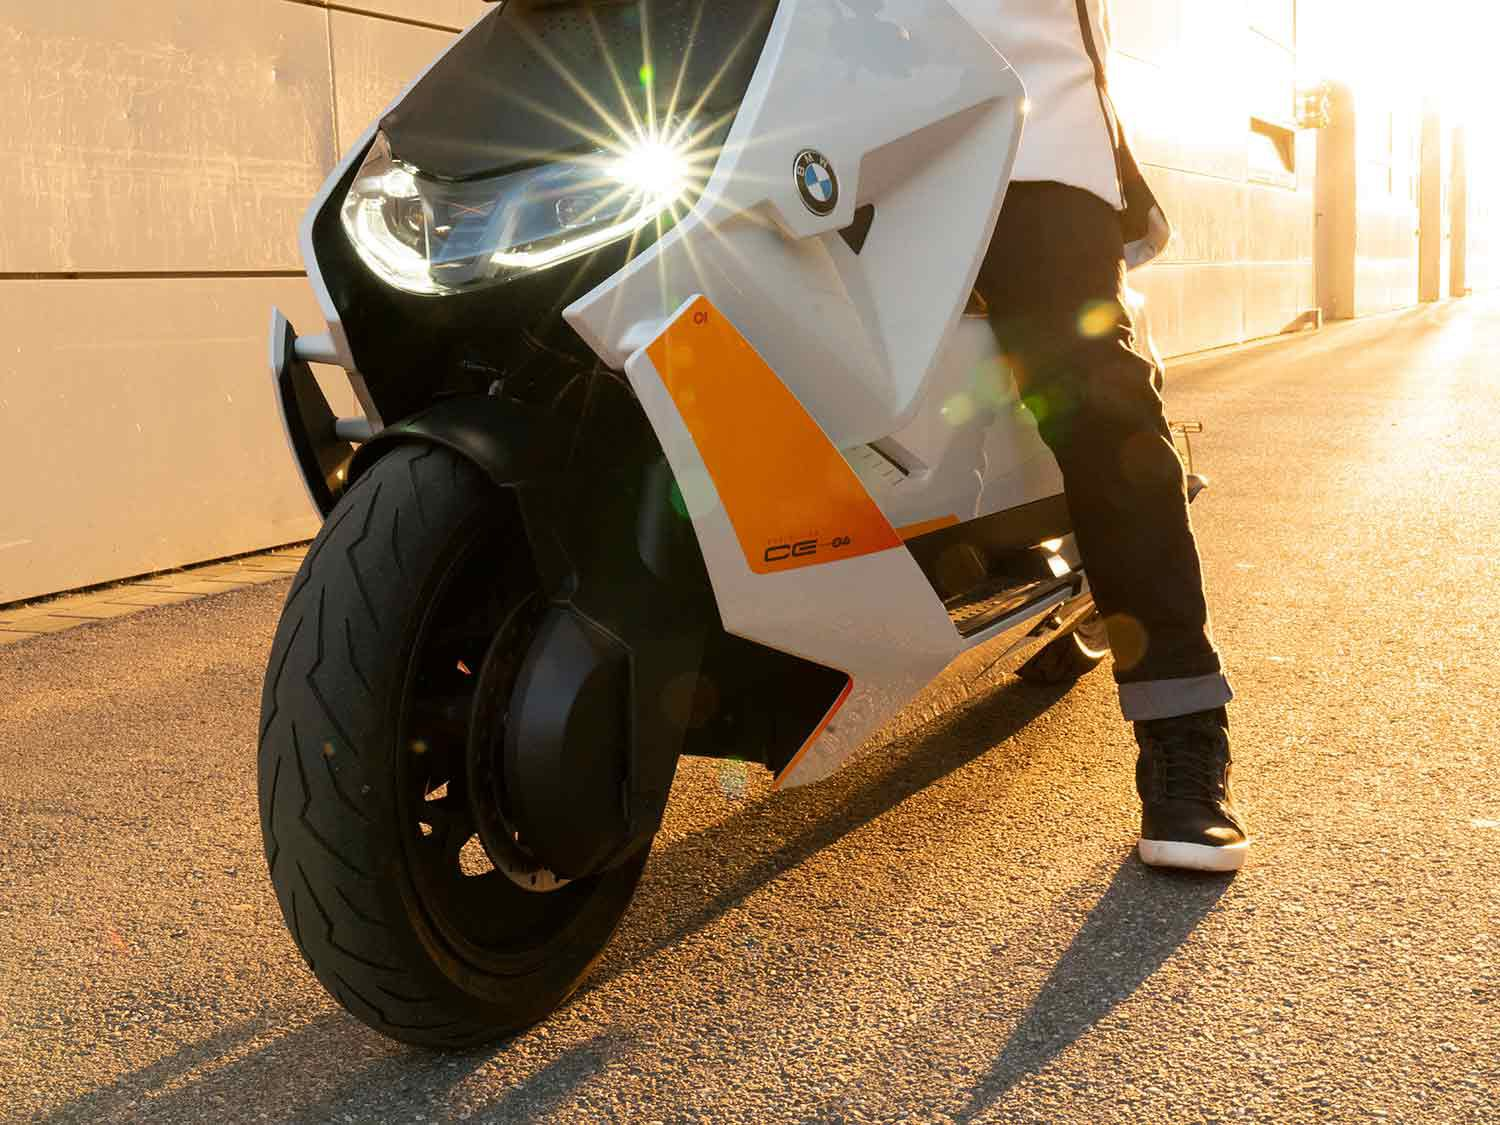 Ergonomics are the name of the game here, with the CE 04 offering easy reach to the pavement and an unfussy relationship between rider and machine.